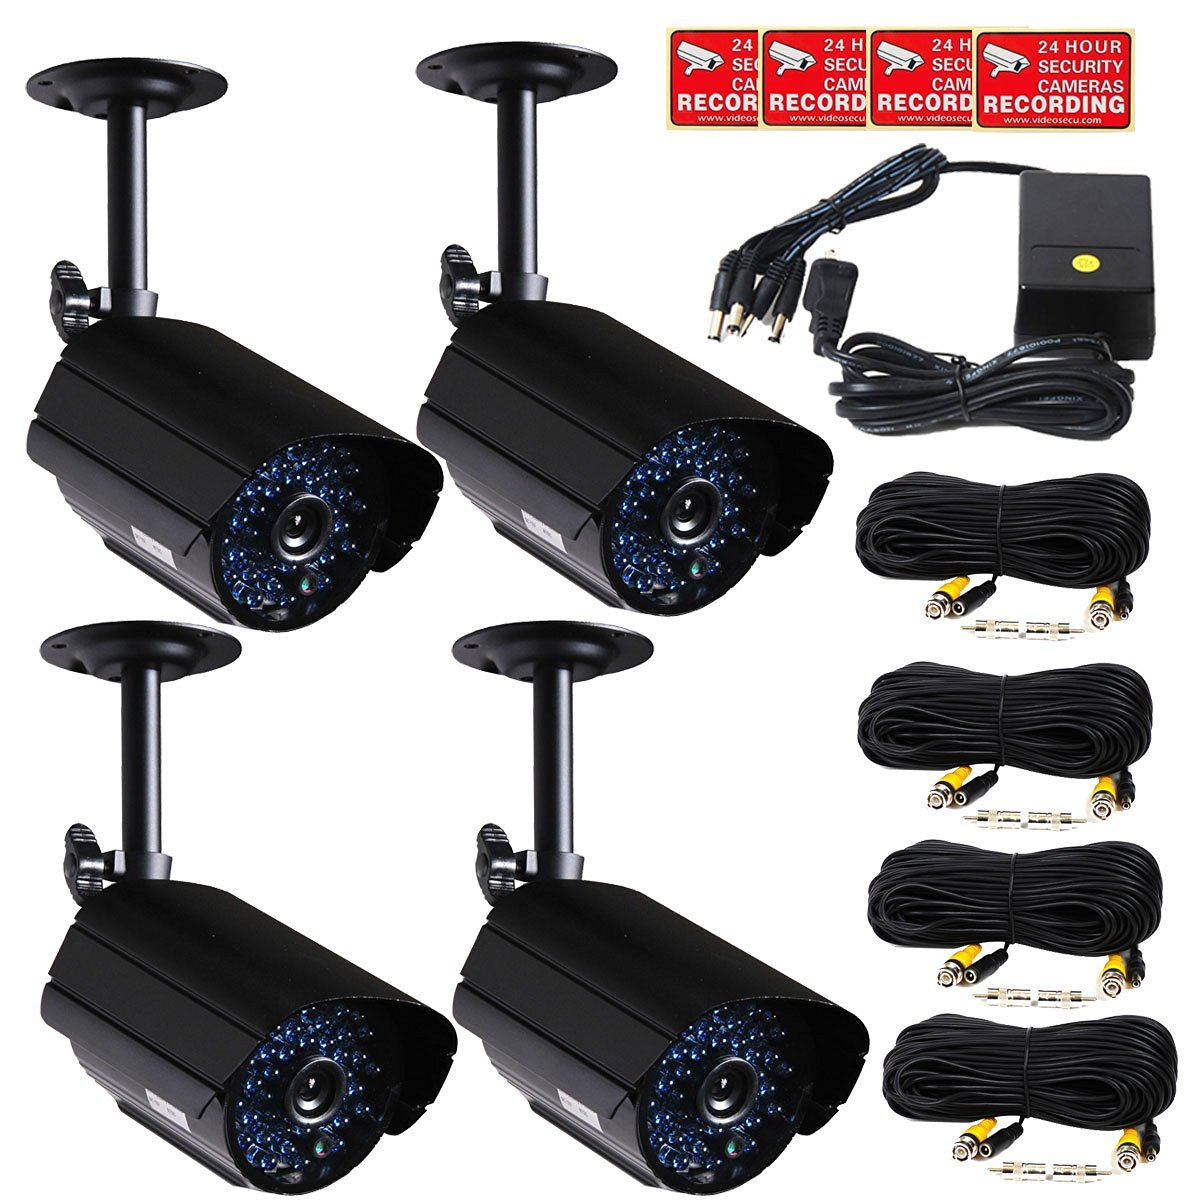 Buy VideoSecu 4 x CCTV Outdoor Day Night Vision Bullet Security ...